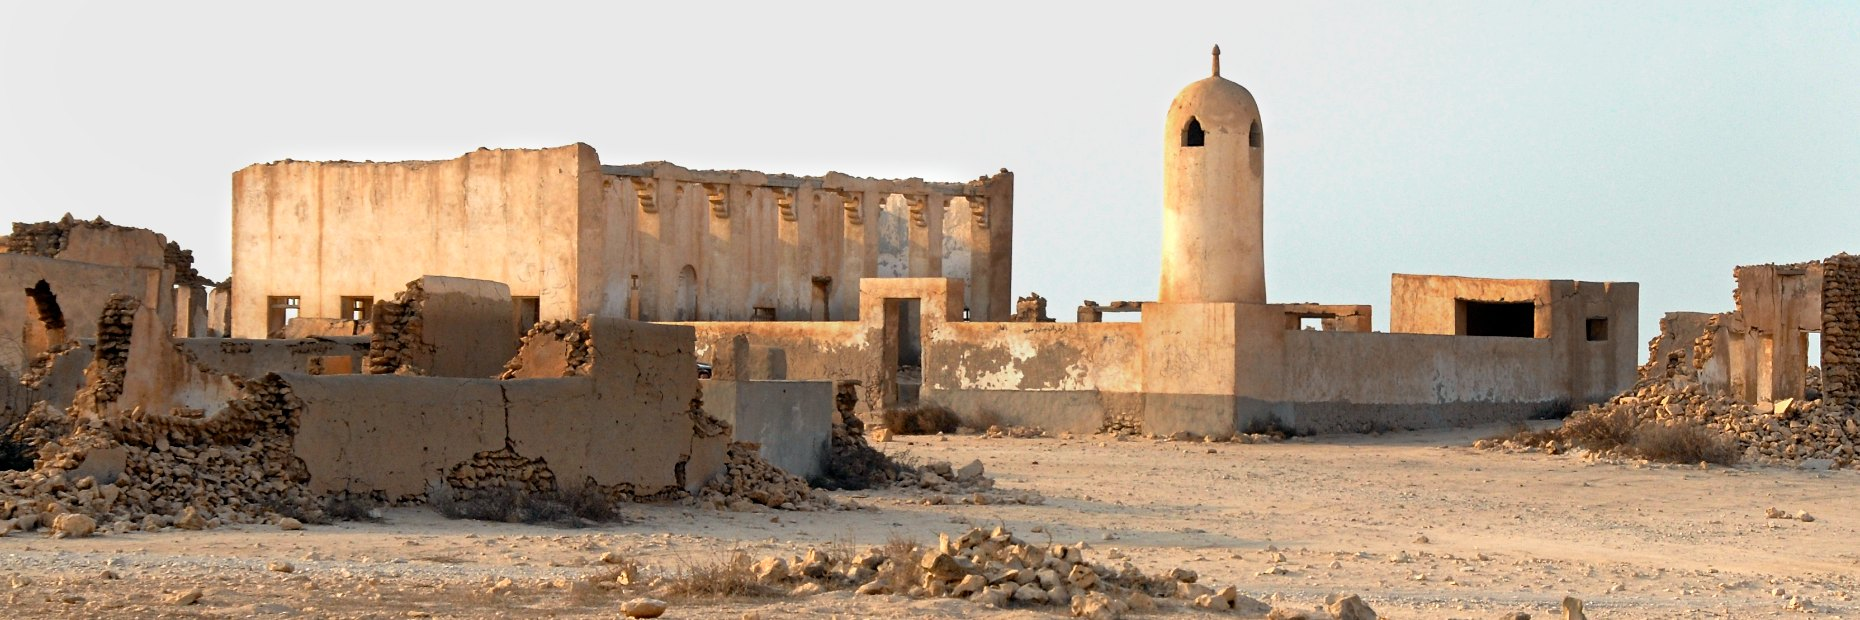 Qatar abandoned village Al Arish, panorama